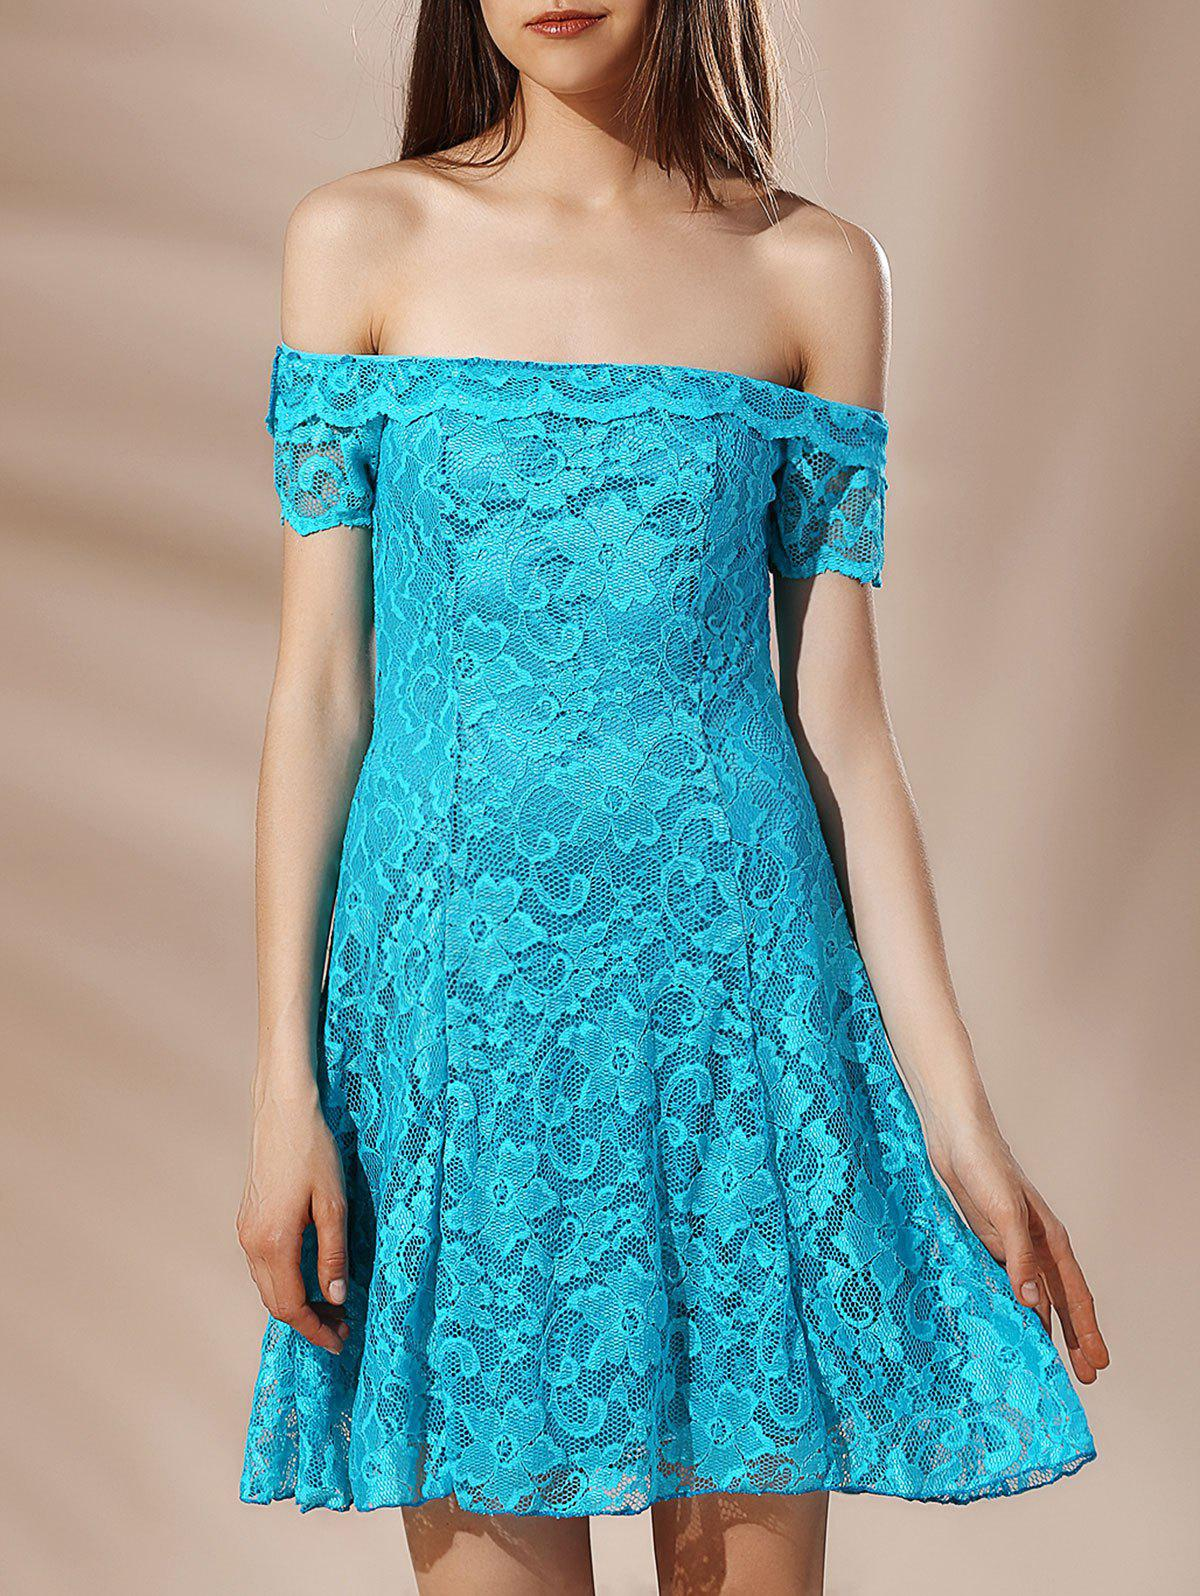 Alluring Women's Off-The-Shoulder Solid Color Lace Crochet Dress